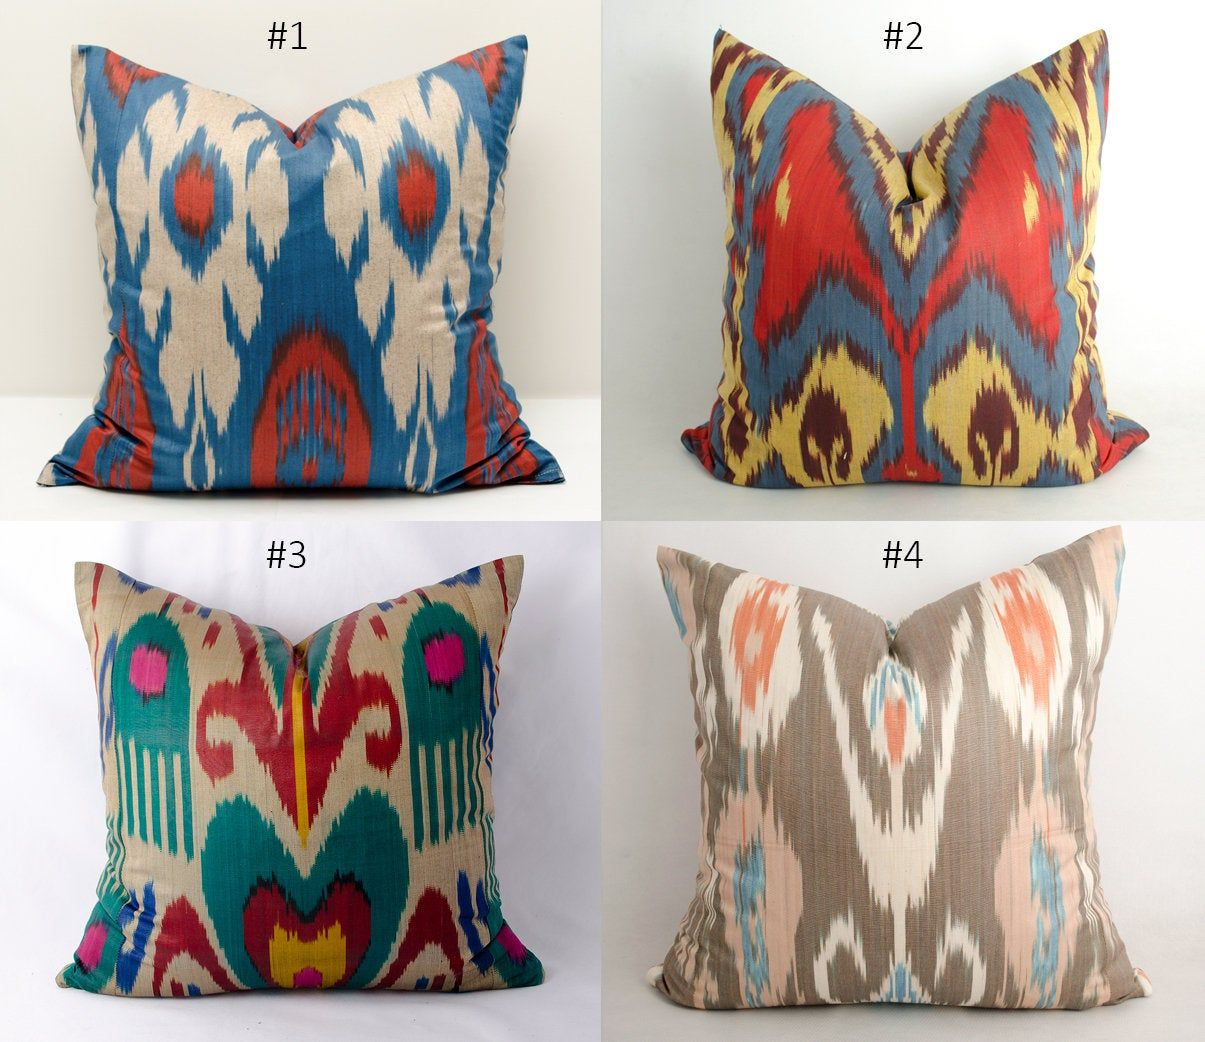 Hand Woven Ikat Pillow Cover Colorfull Ikat Pillow Cover Handmade Pillow Cover Silk Uzbek Pillow Cover Silk Ikat Pillow Cover